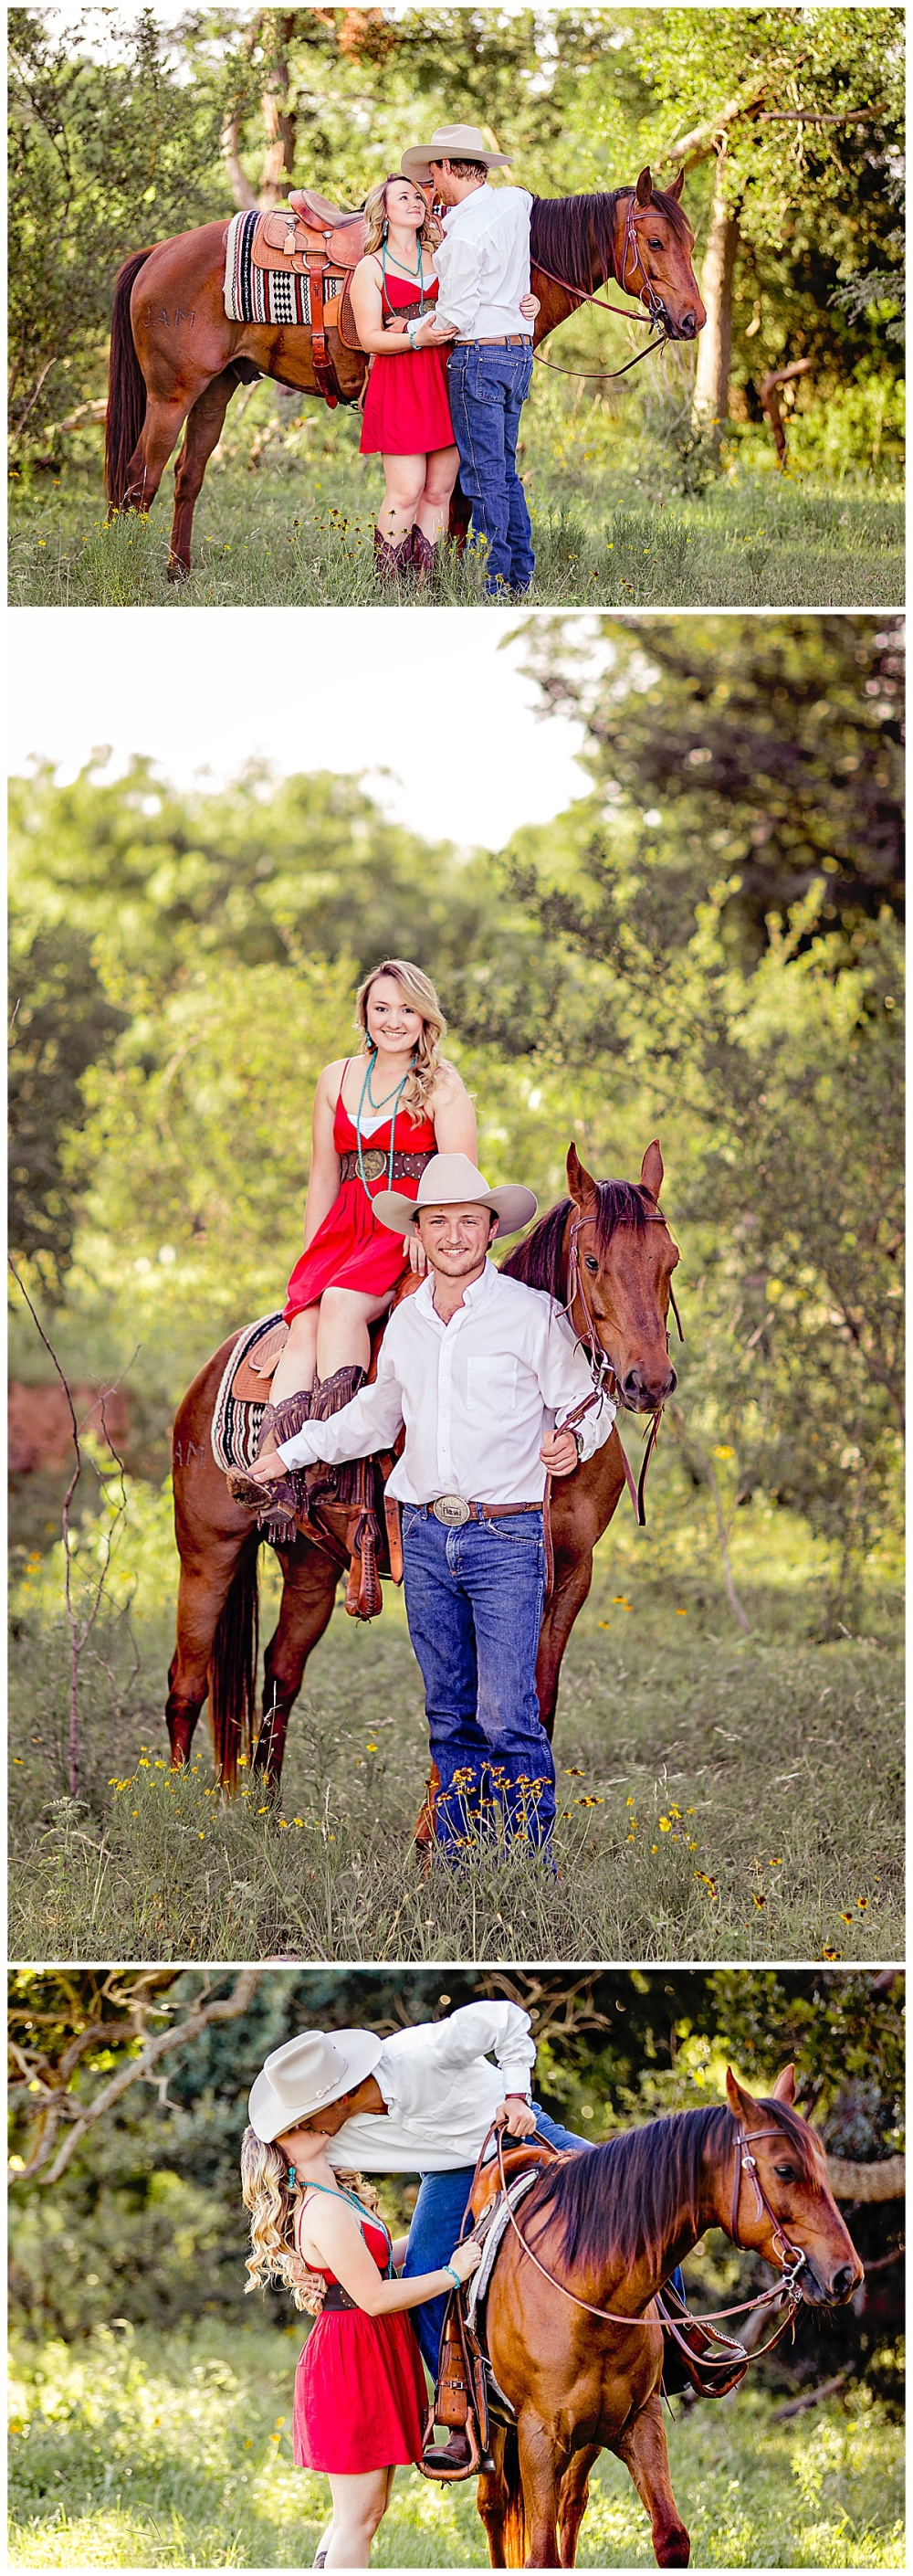 Rustic-Engagement-Session-Horse-Texas-Sunset-Carly-Barton-Photography_0006.jpg